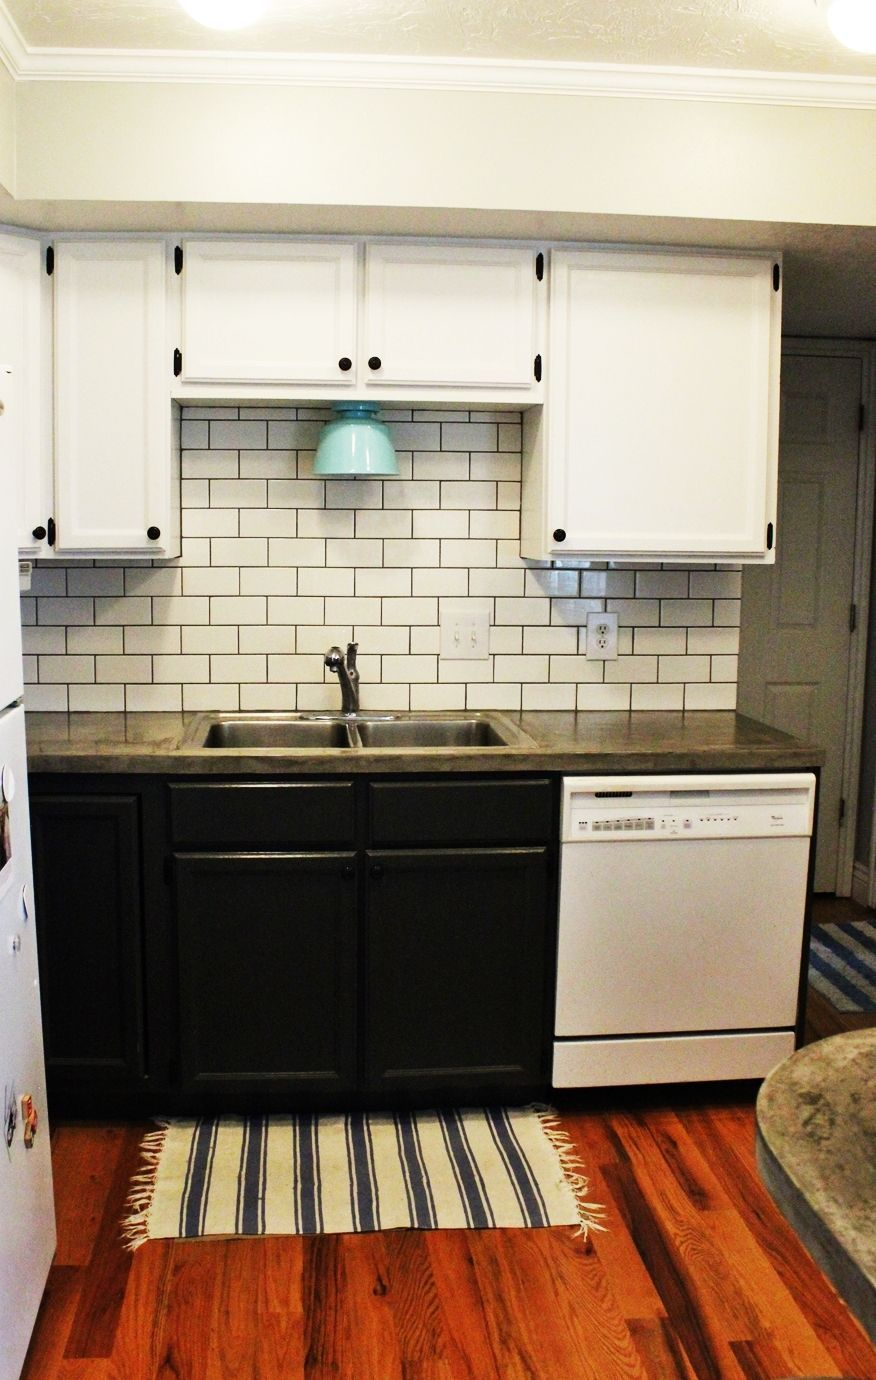 - 10 Best Ways To Install New Kitchen Backsplash: Easy Tips To